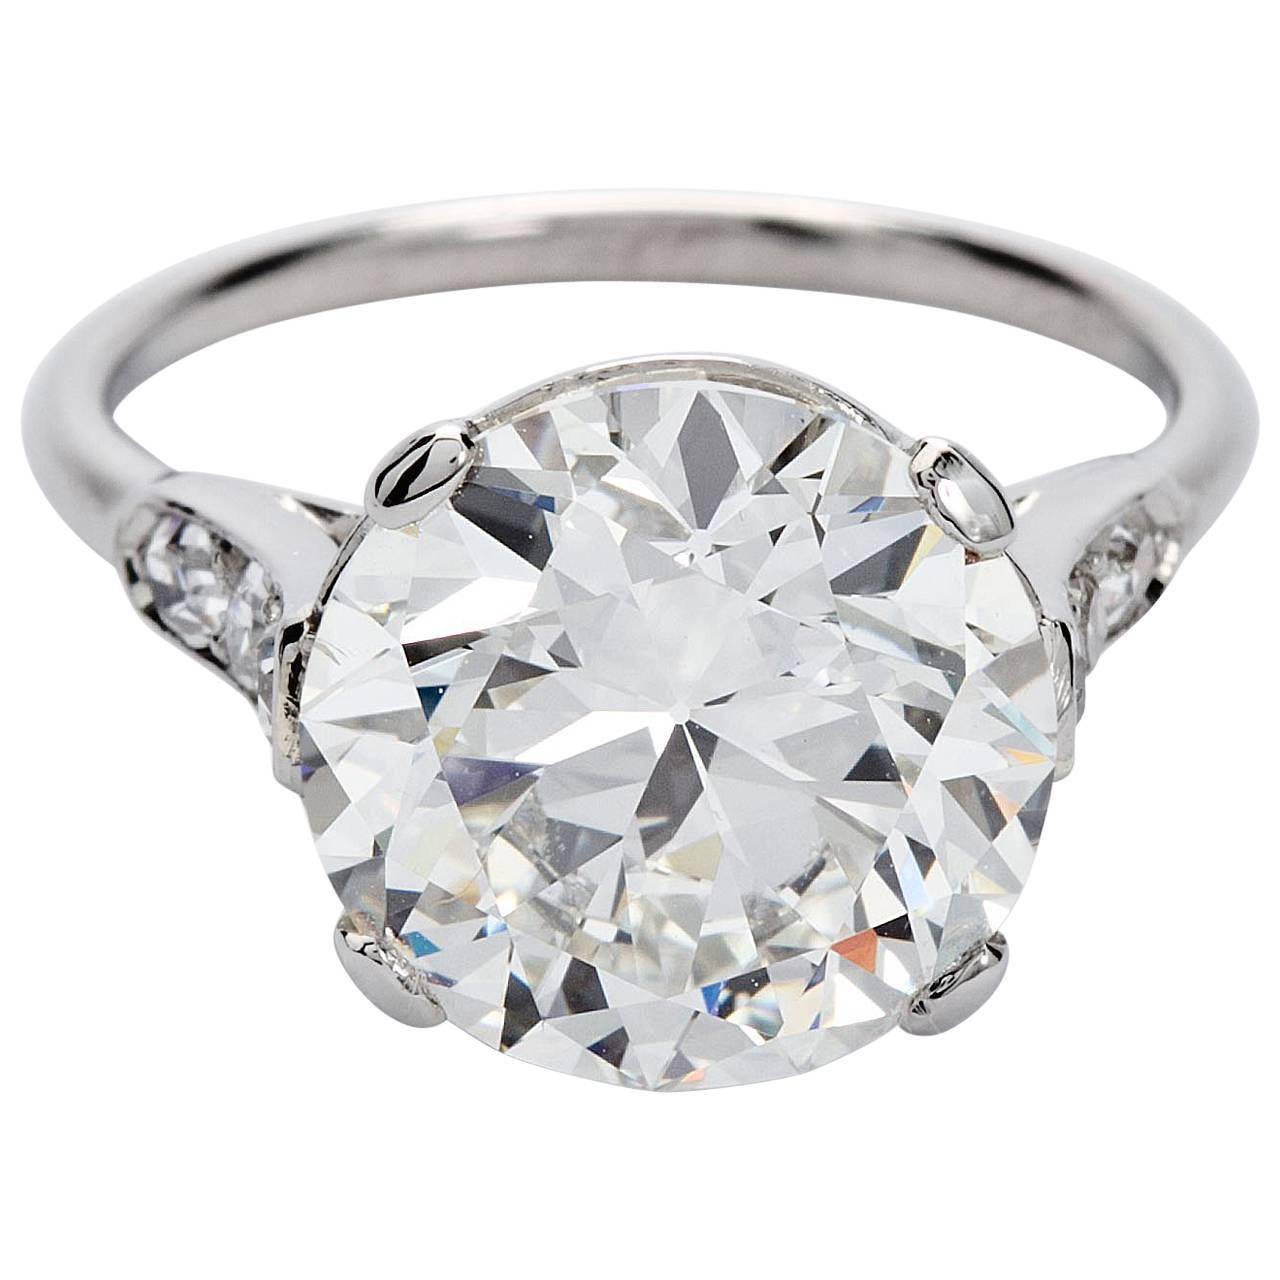 Art crafted engagement rings - Rare Art Deco Cartier Round Diamond Engagement Ring Gia Cert 4 Carat